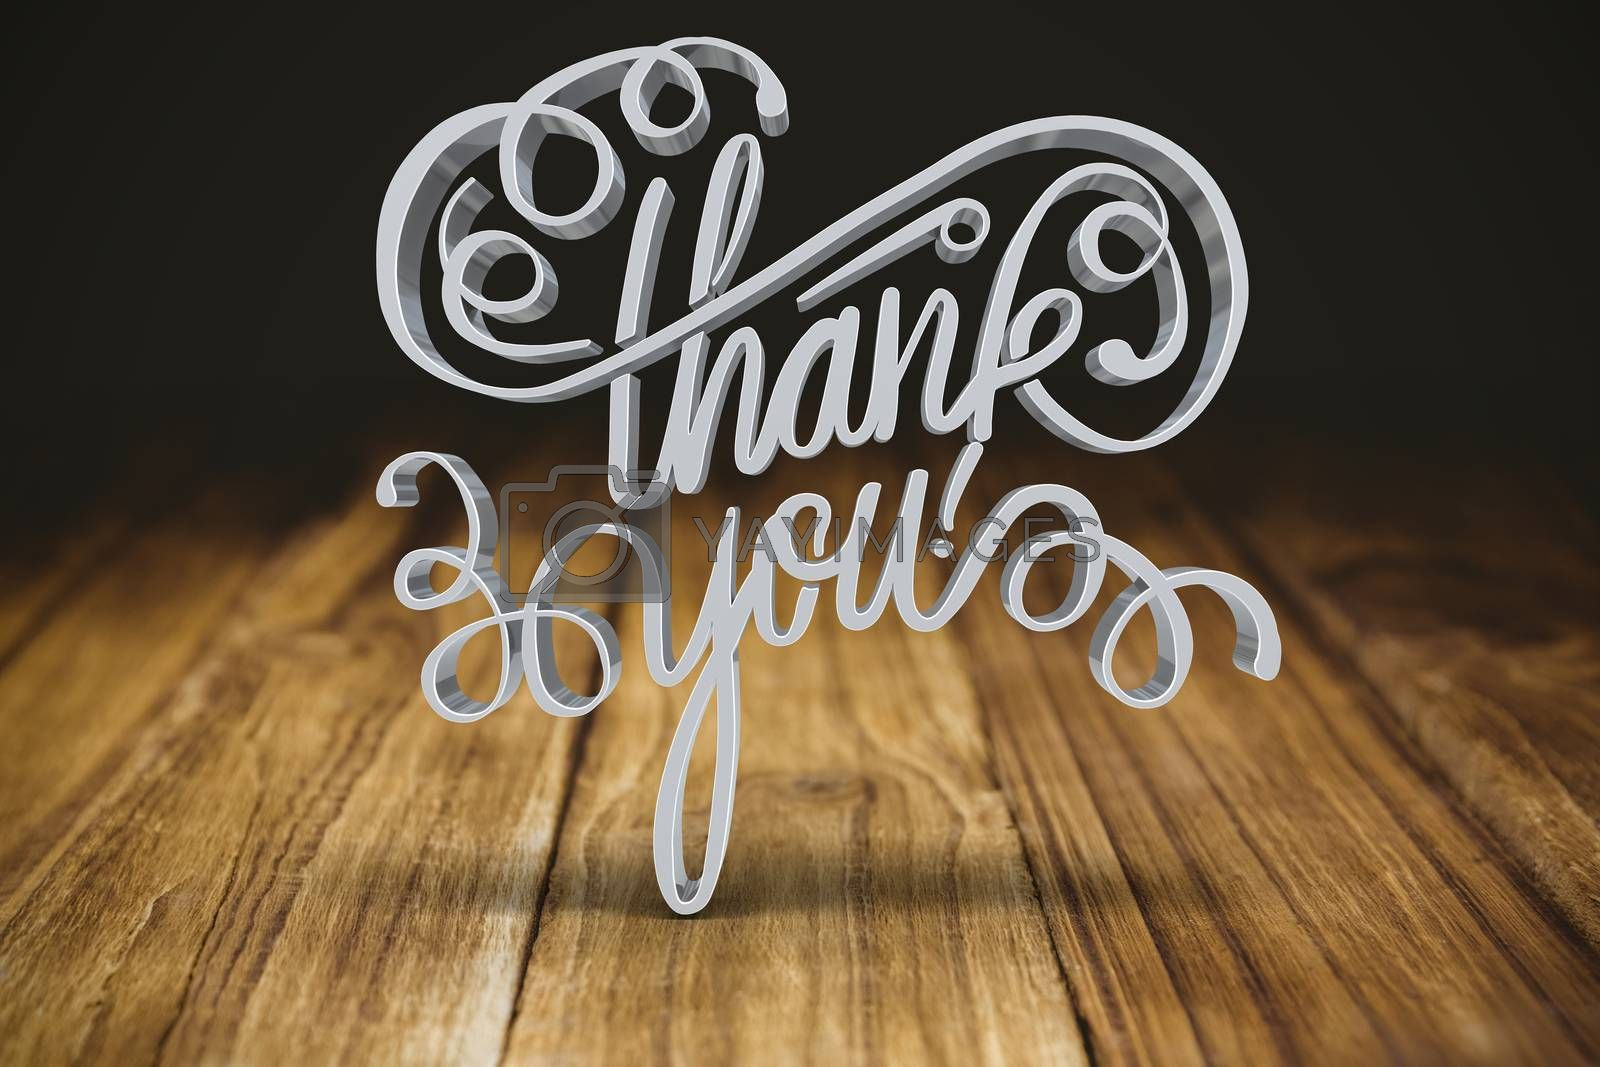 Three dimensional of thank you text against wooden table